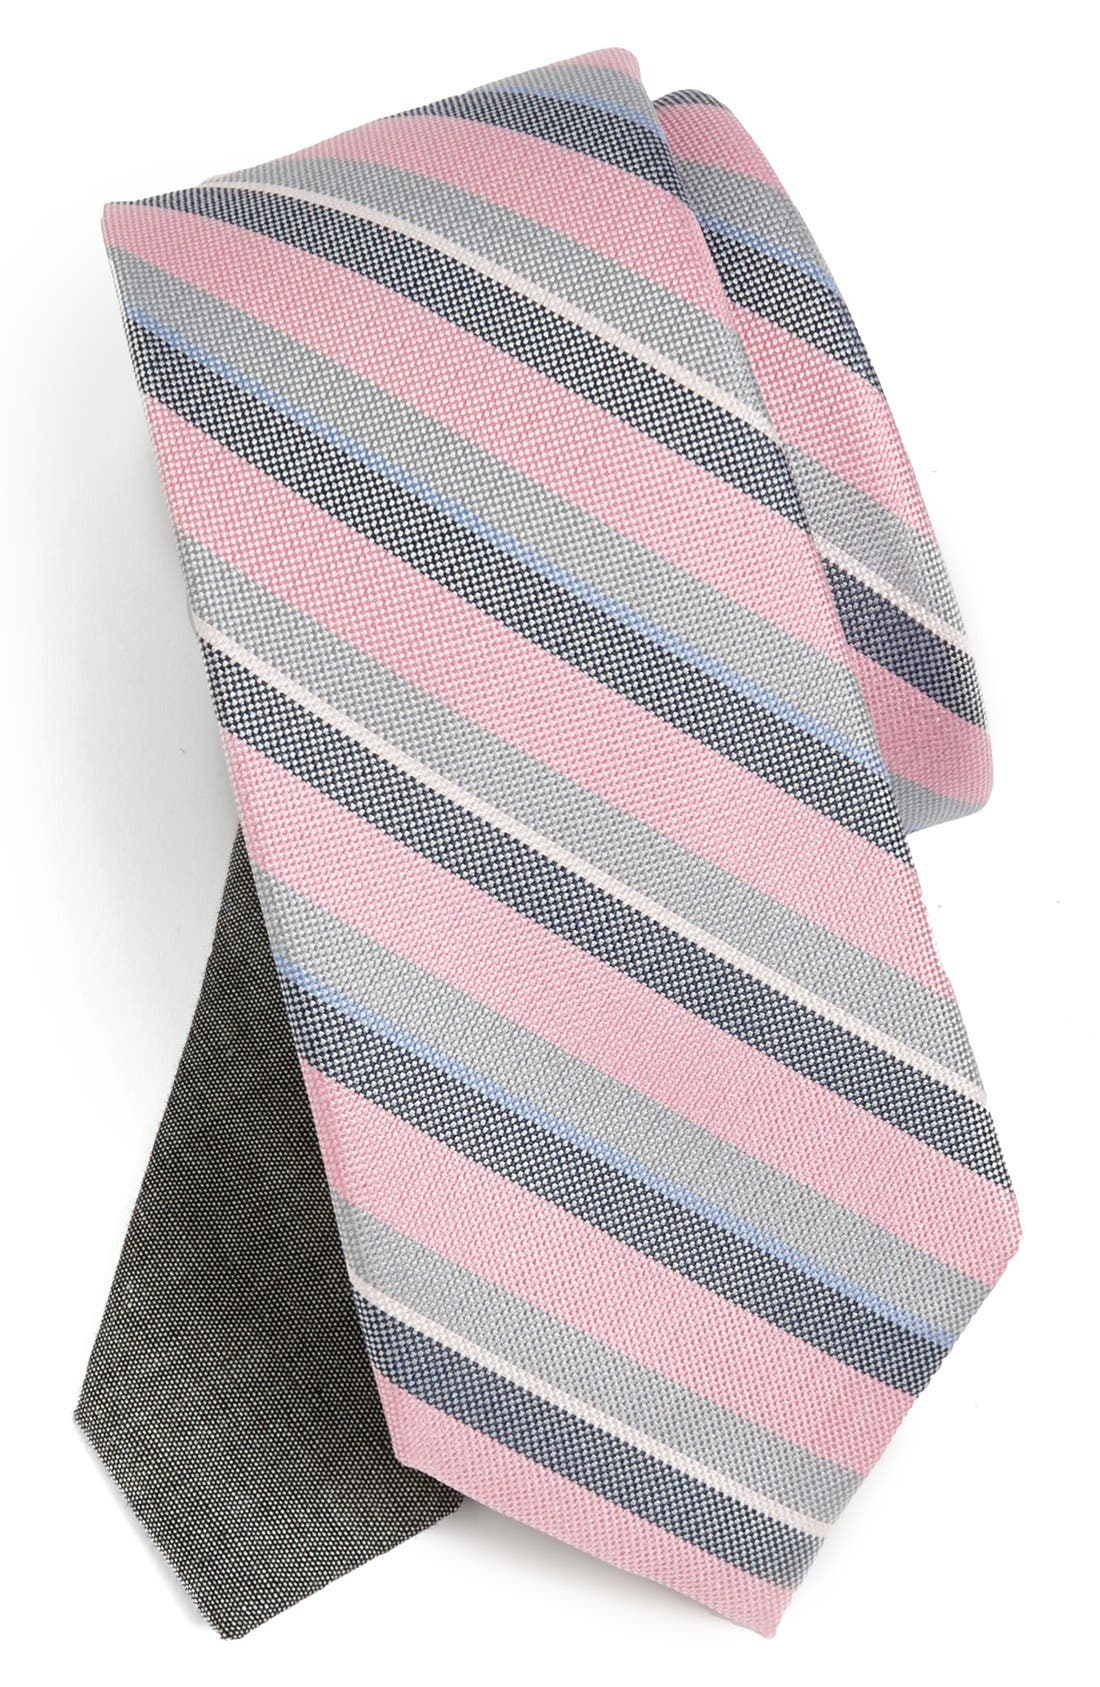 Alternate Image 1 Selected - EDIT by The Tie Bar Stripe Silk Tie (Nordstrom Exclusive)